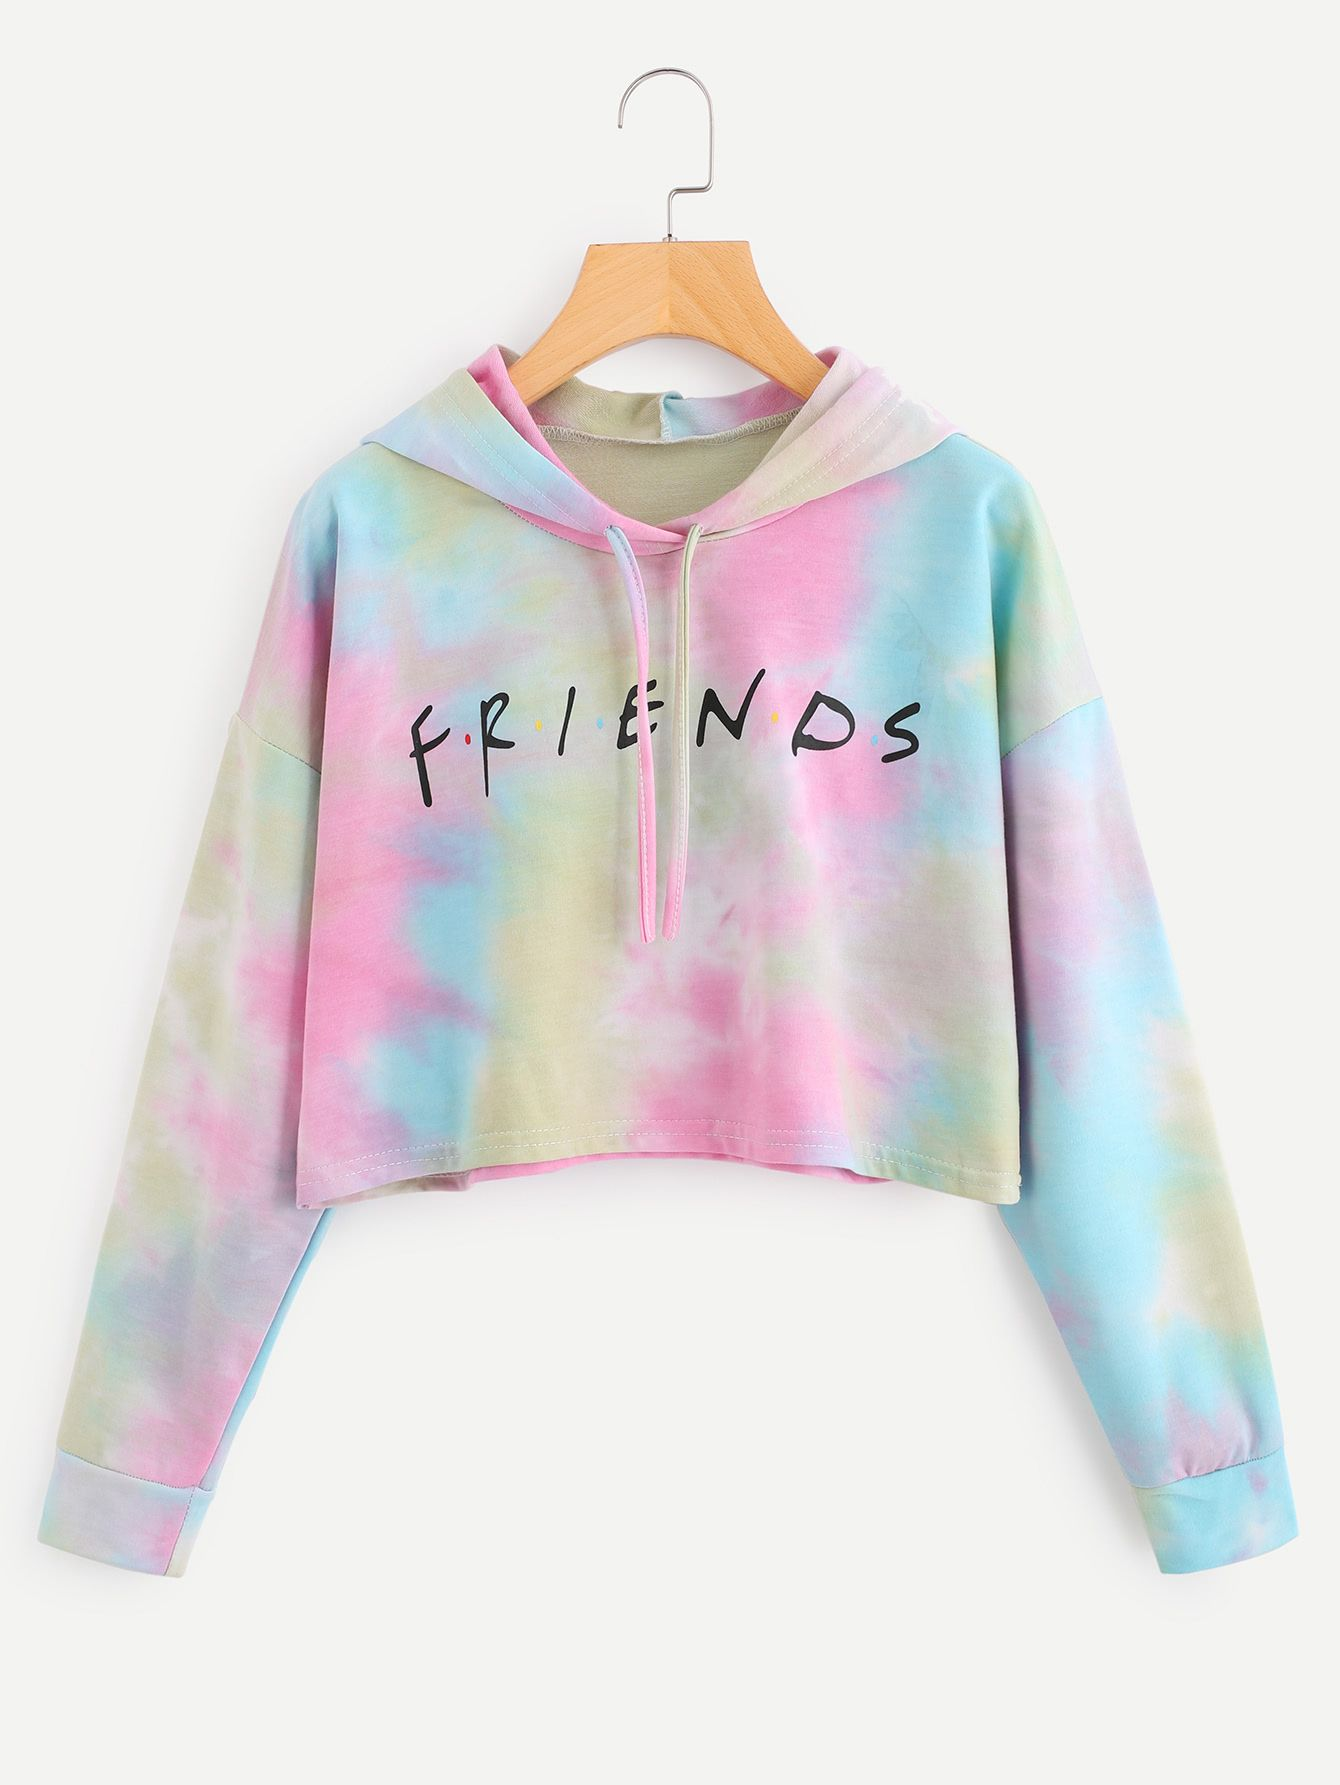 Shop Letter Print Water Color Hoodie Online Shein Offers Letter